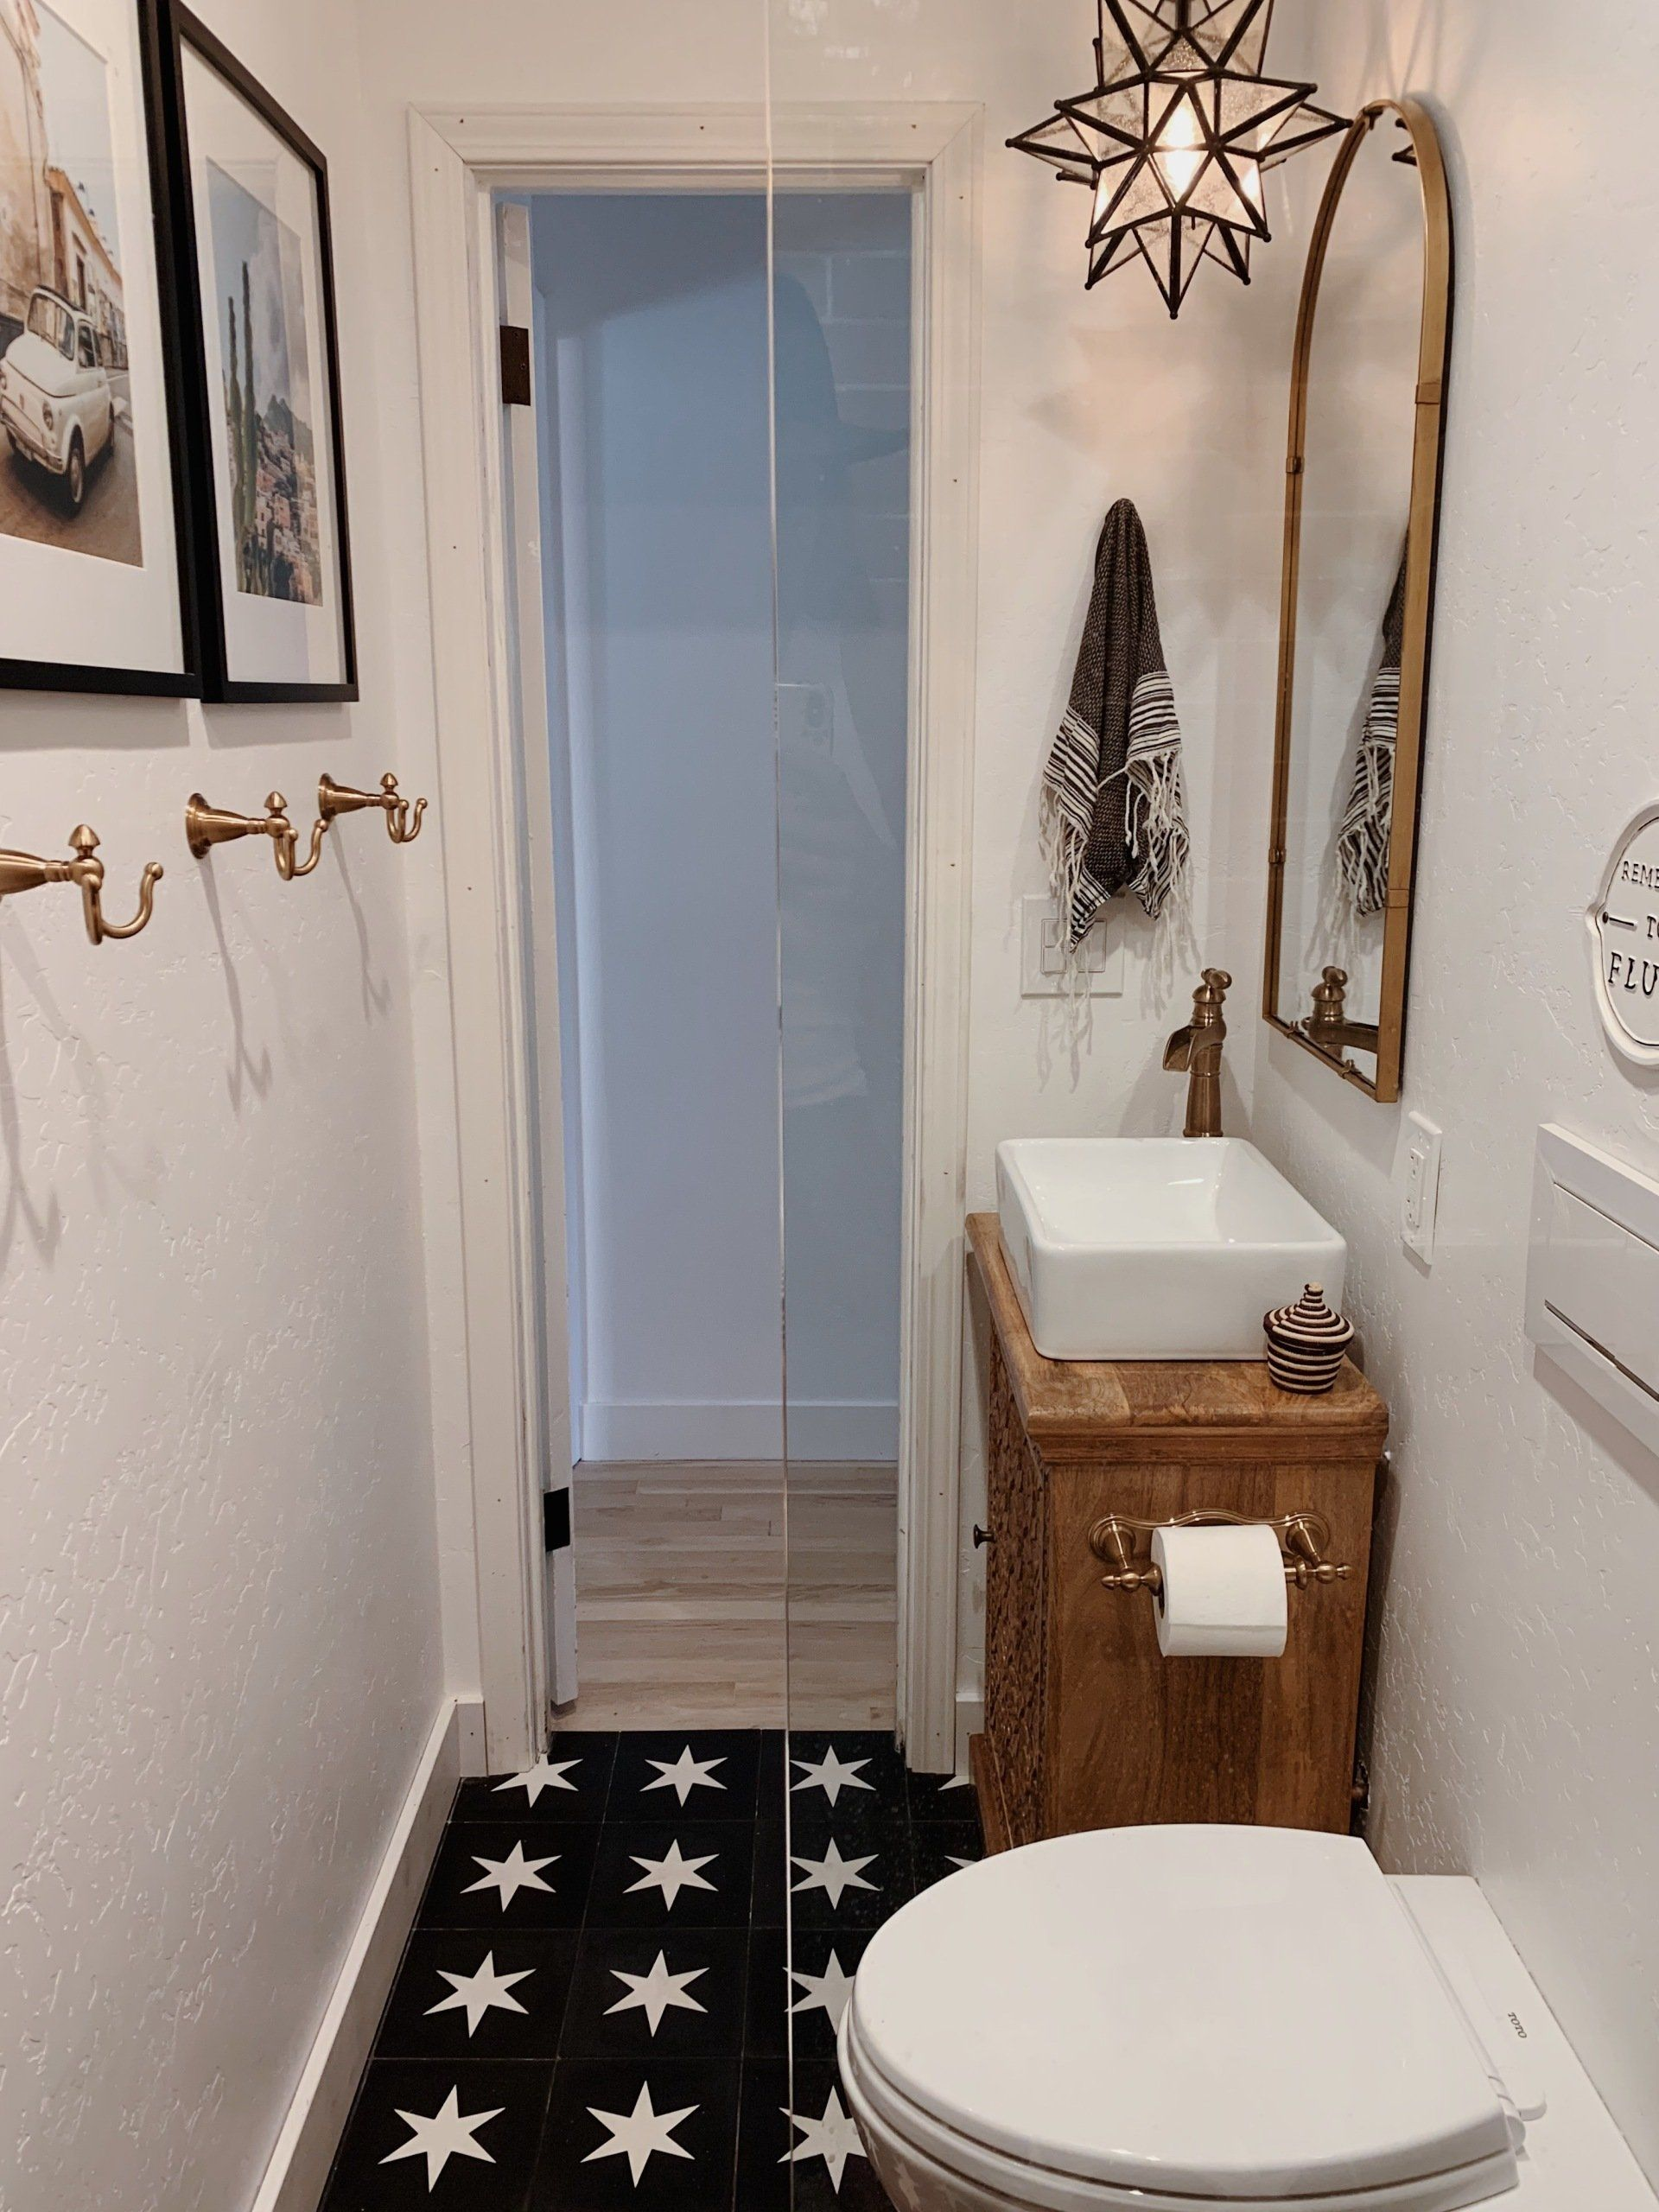 A behind the scenes look at our remodel turning a bedroom